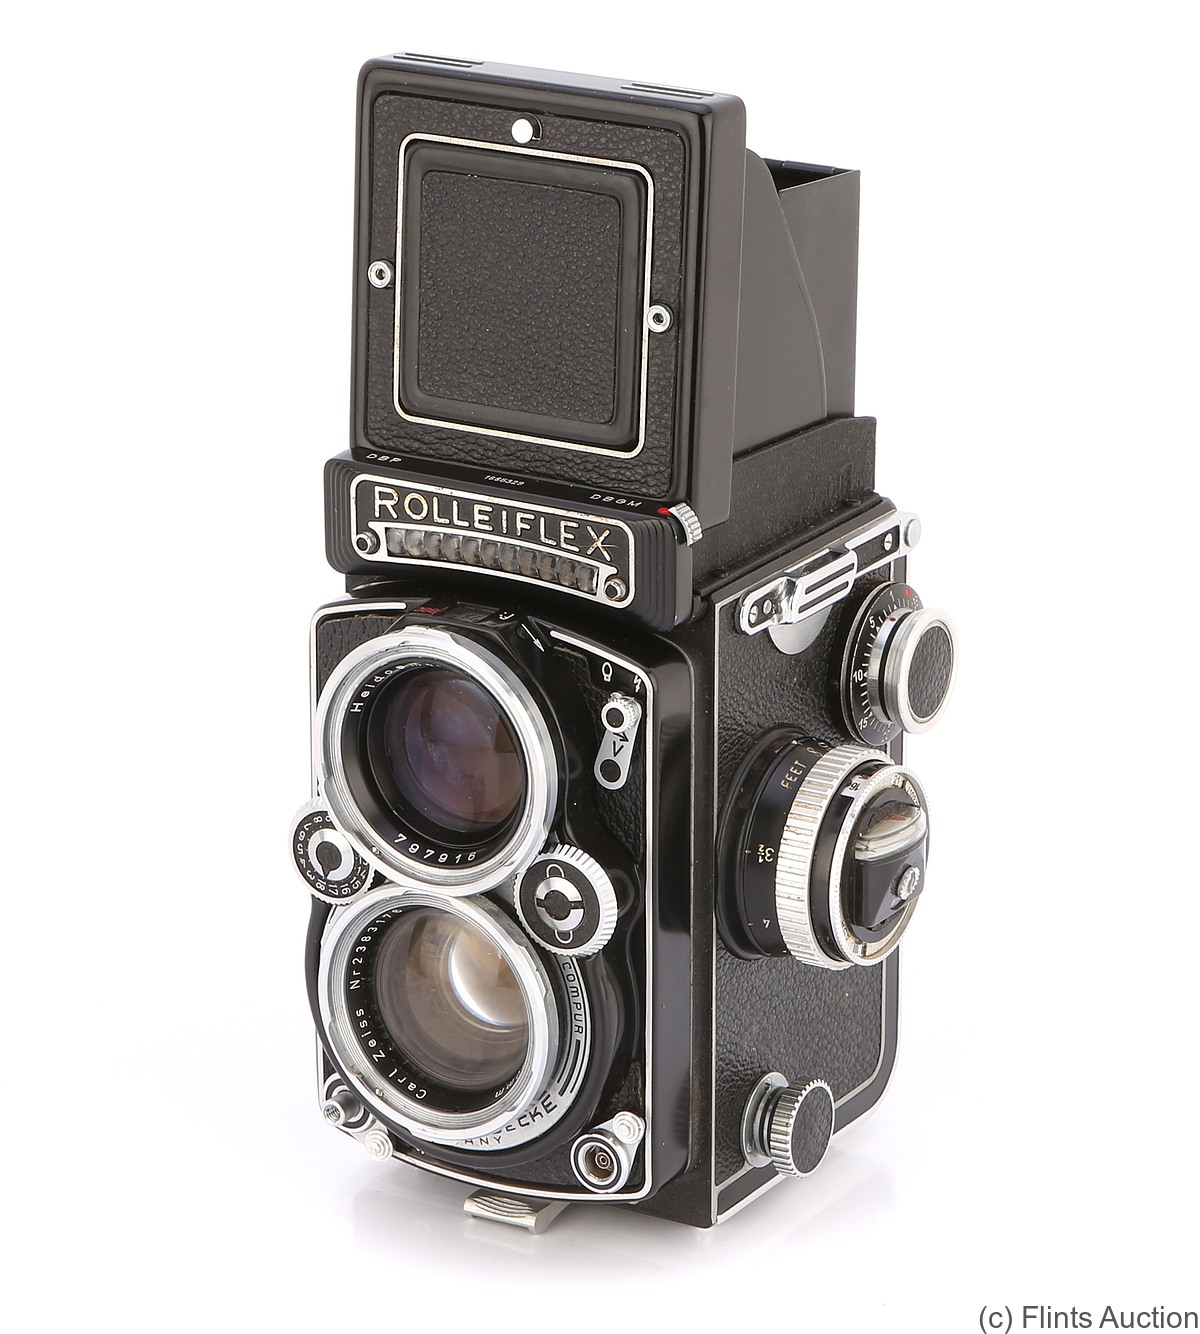 rolleiflex models by serial number